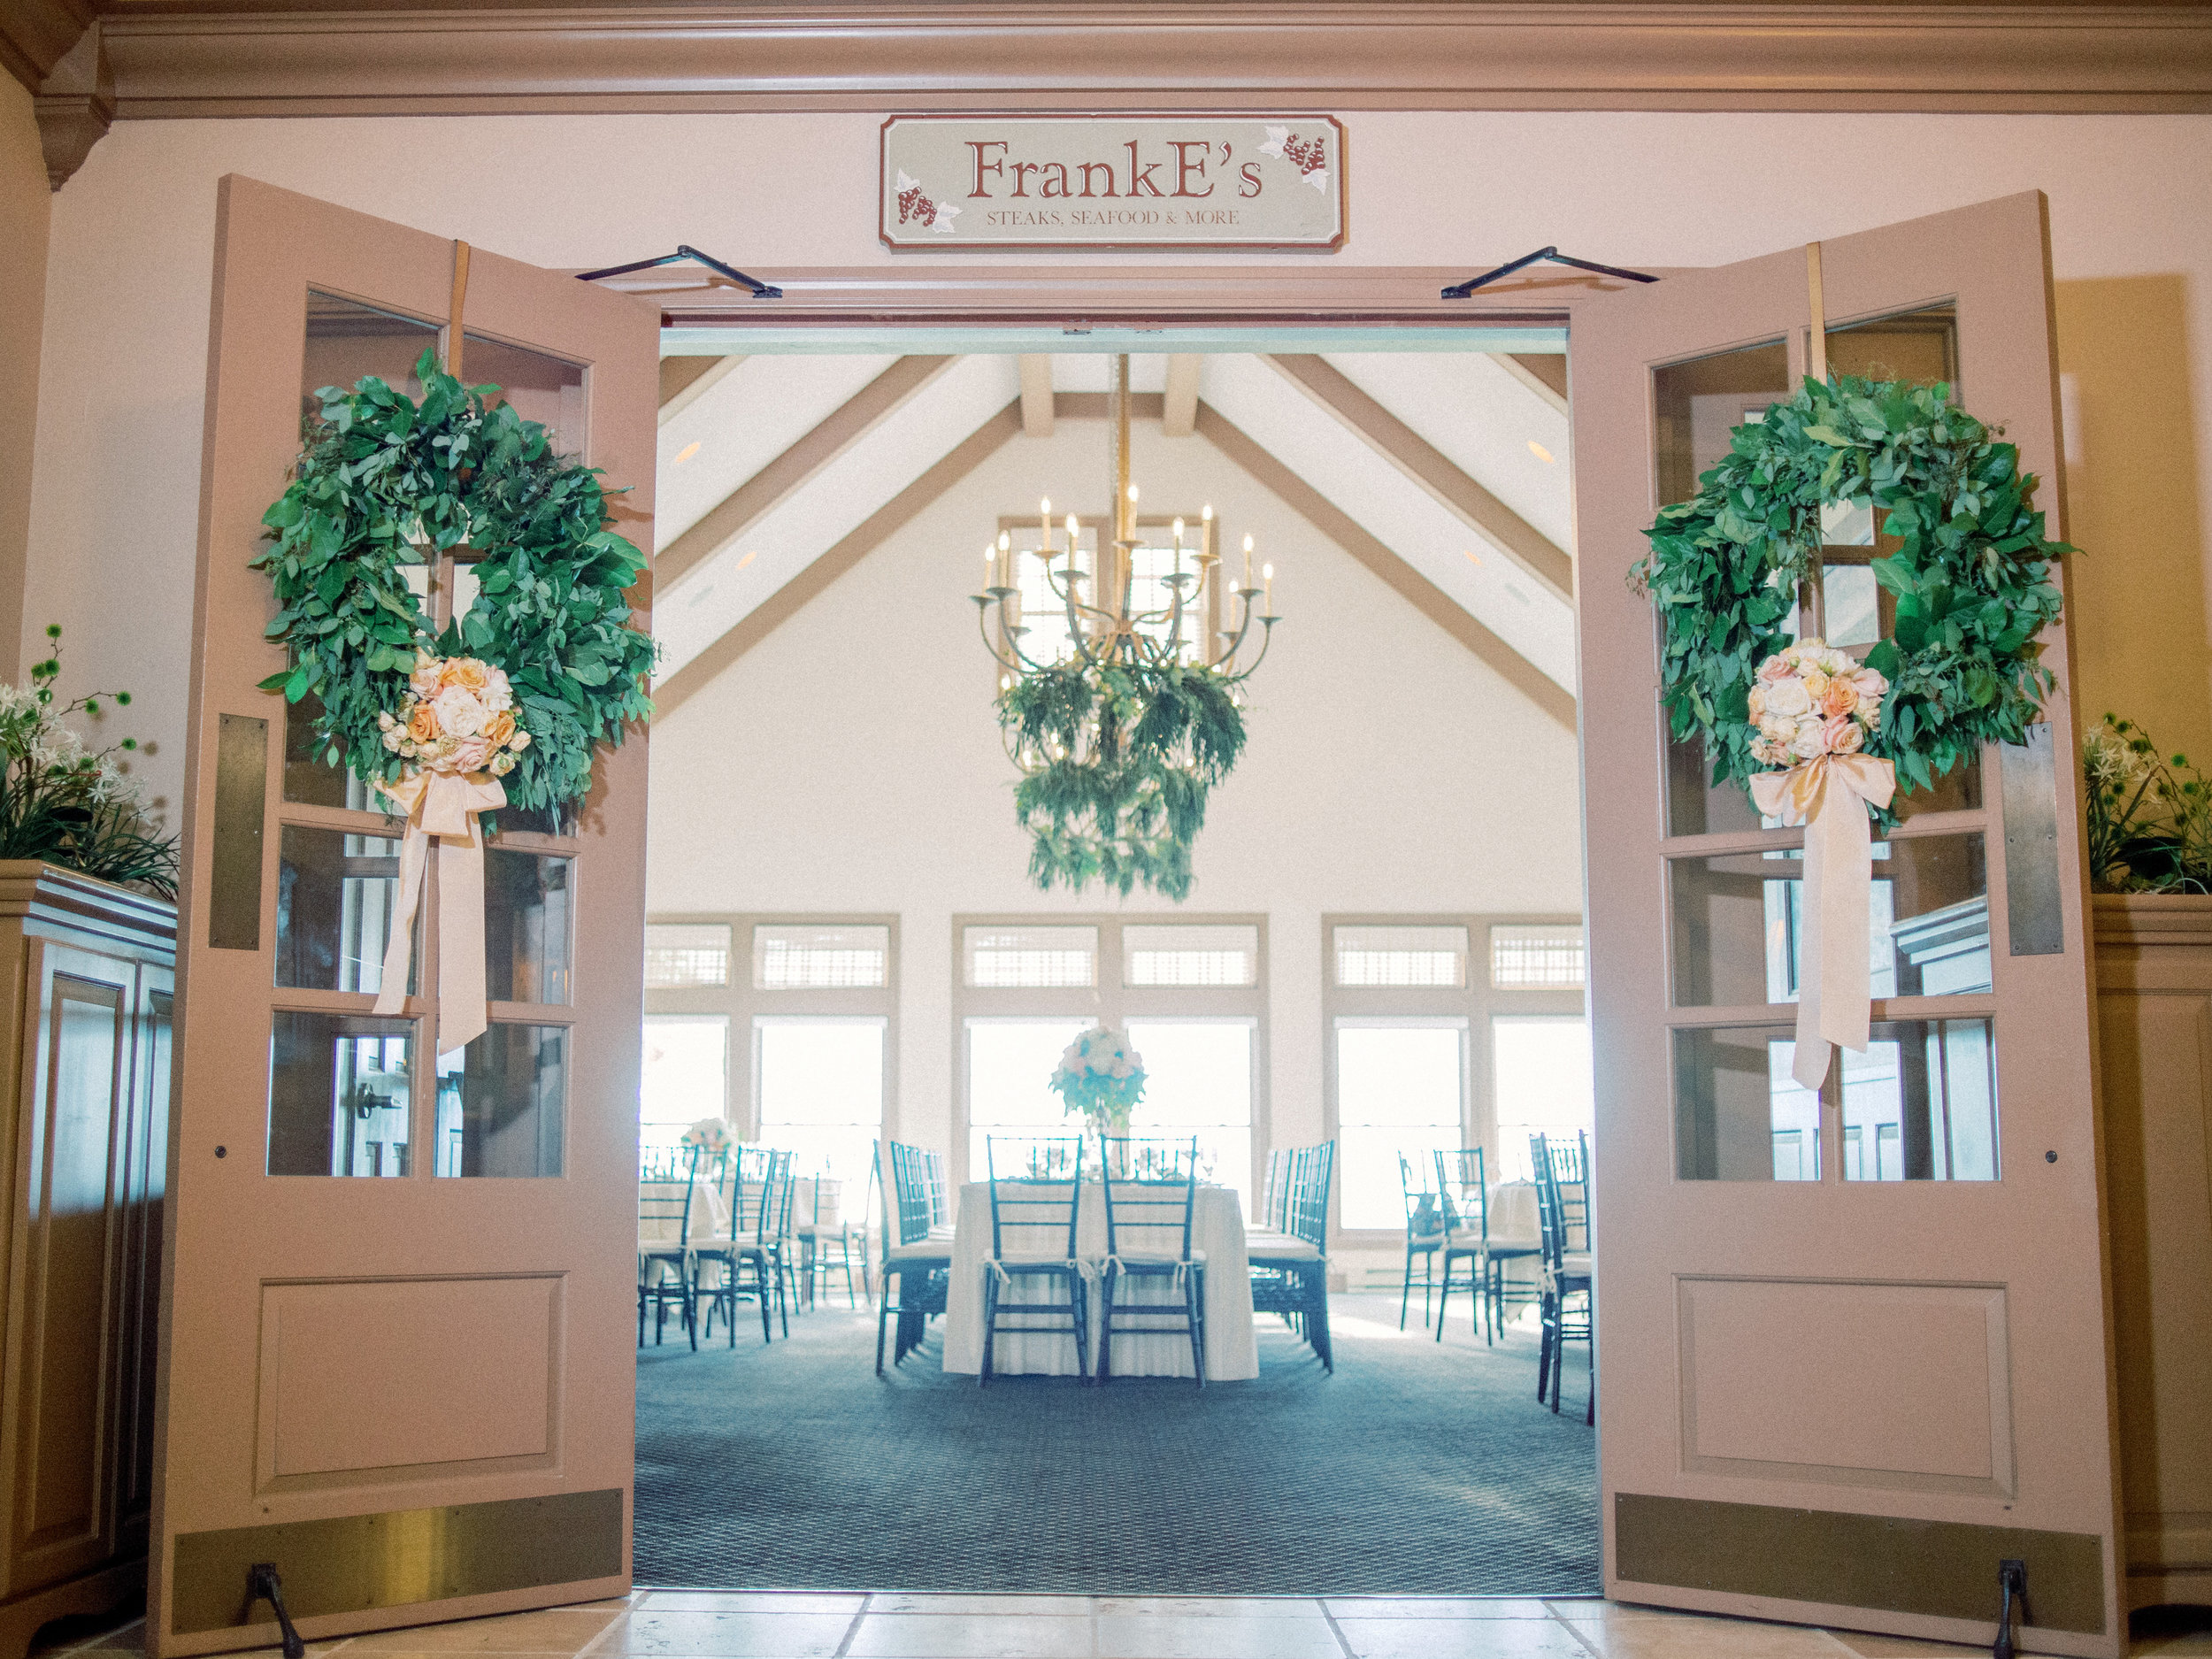 Horseshoe Bay Golf club reception with double door wreath entrance